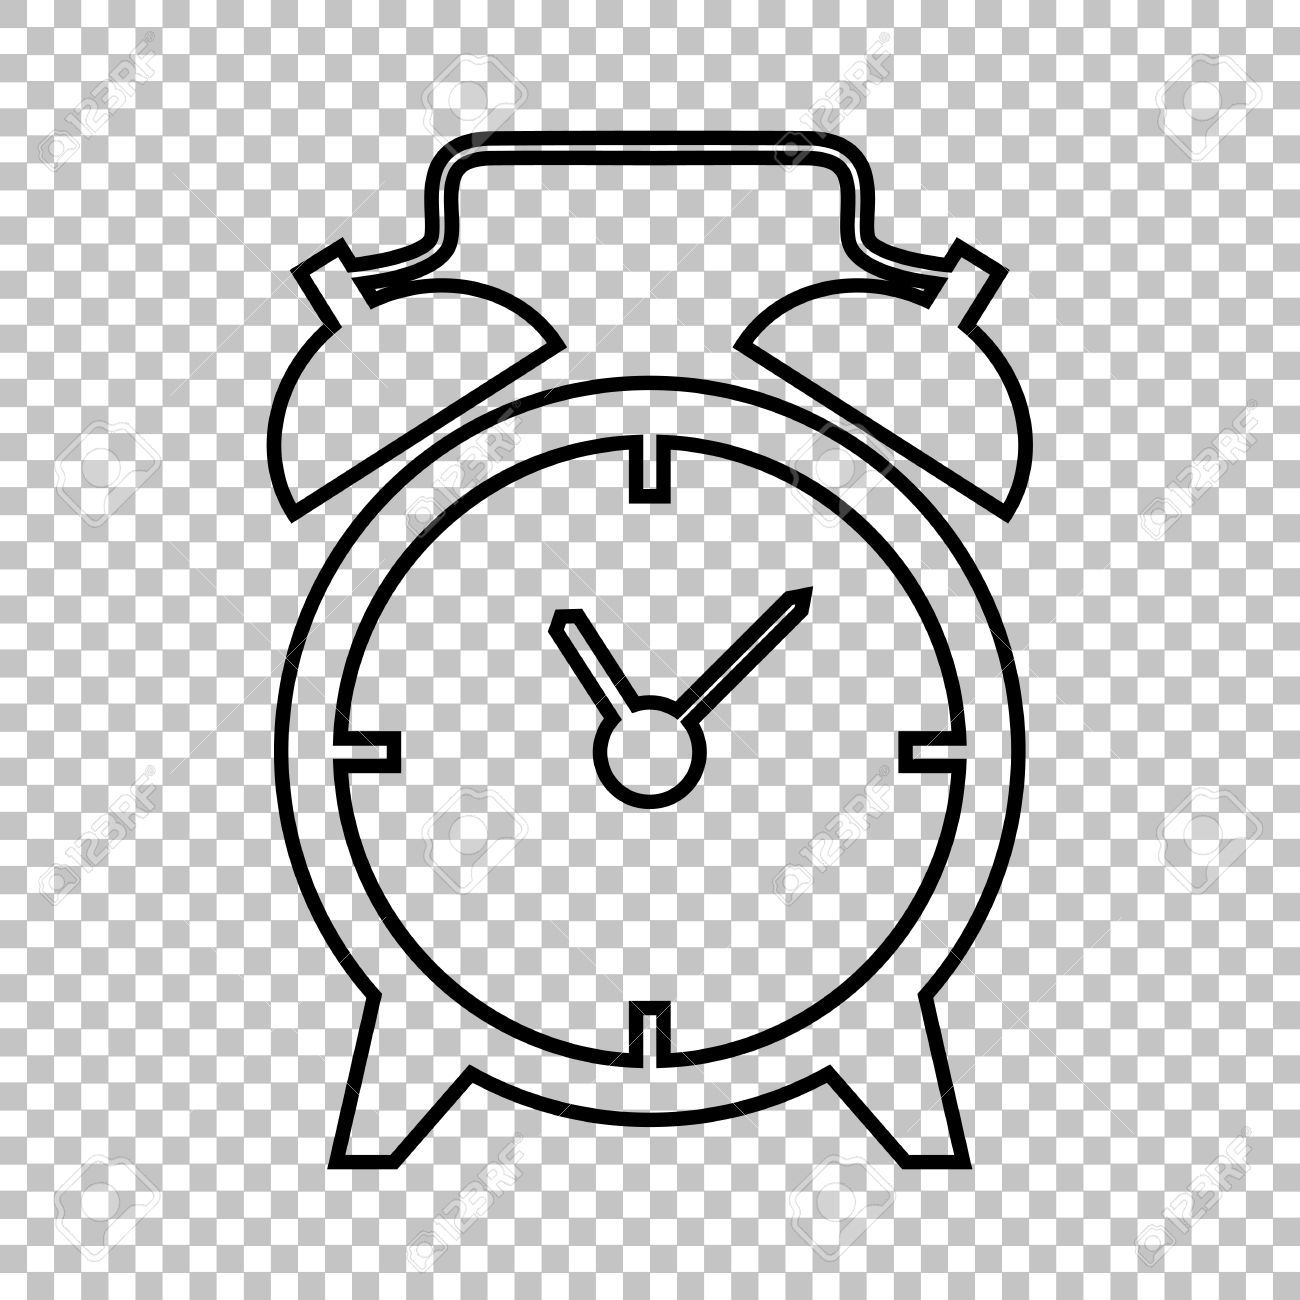 Alarm Clock Line Vector Icon On Transparent Background.